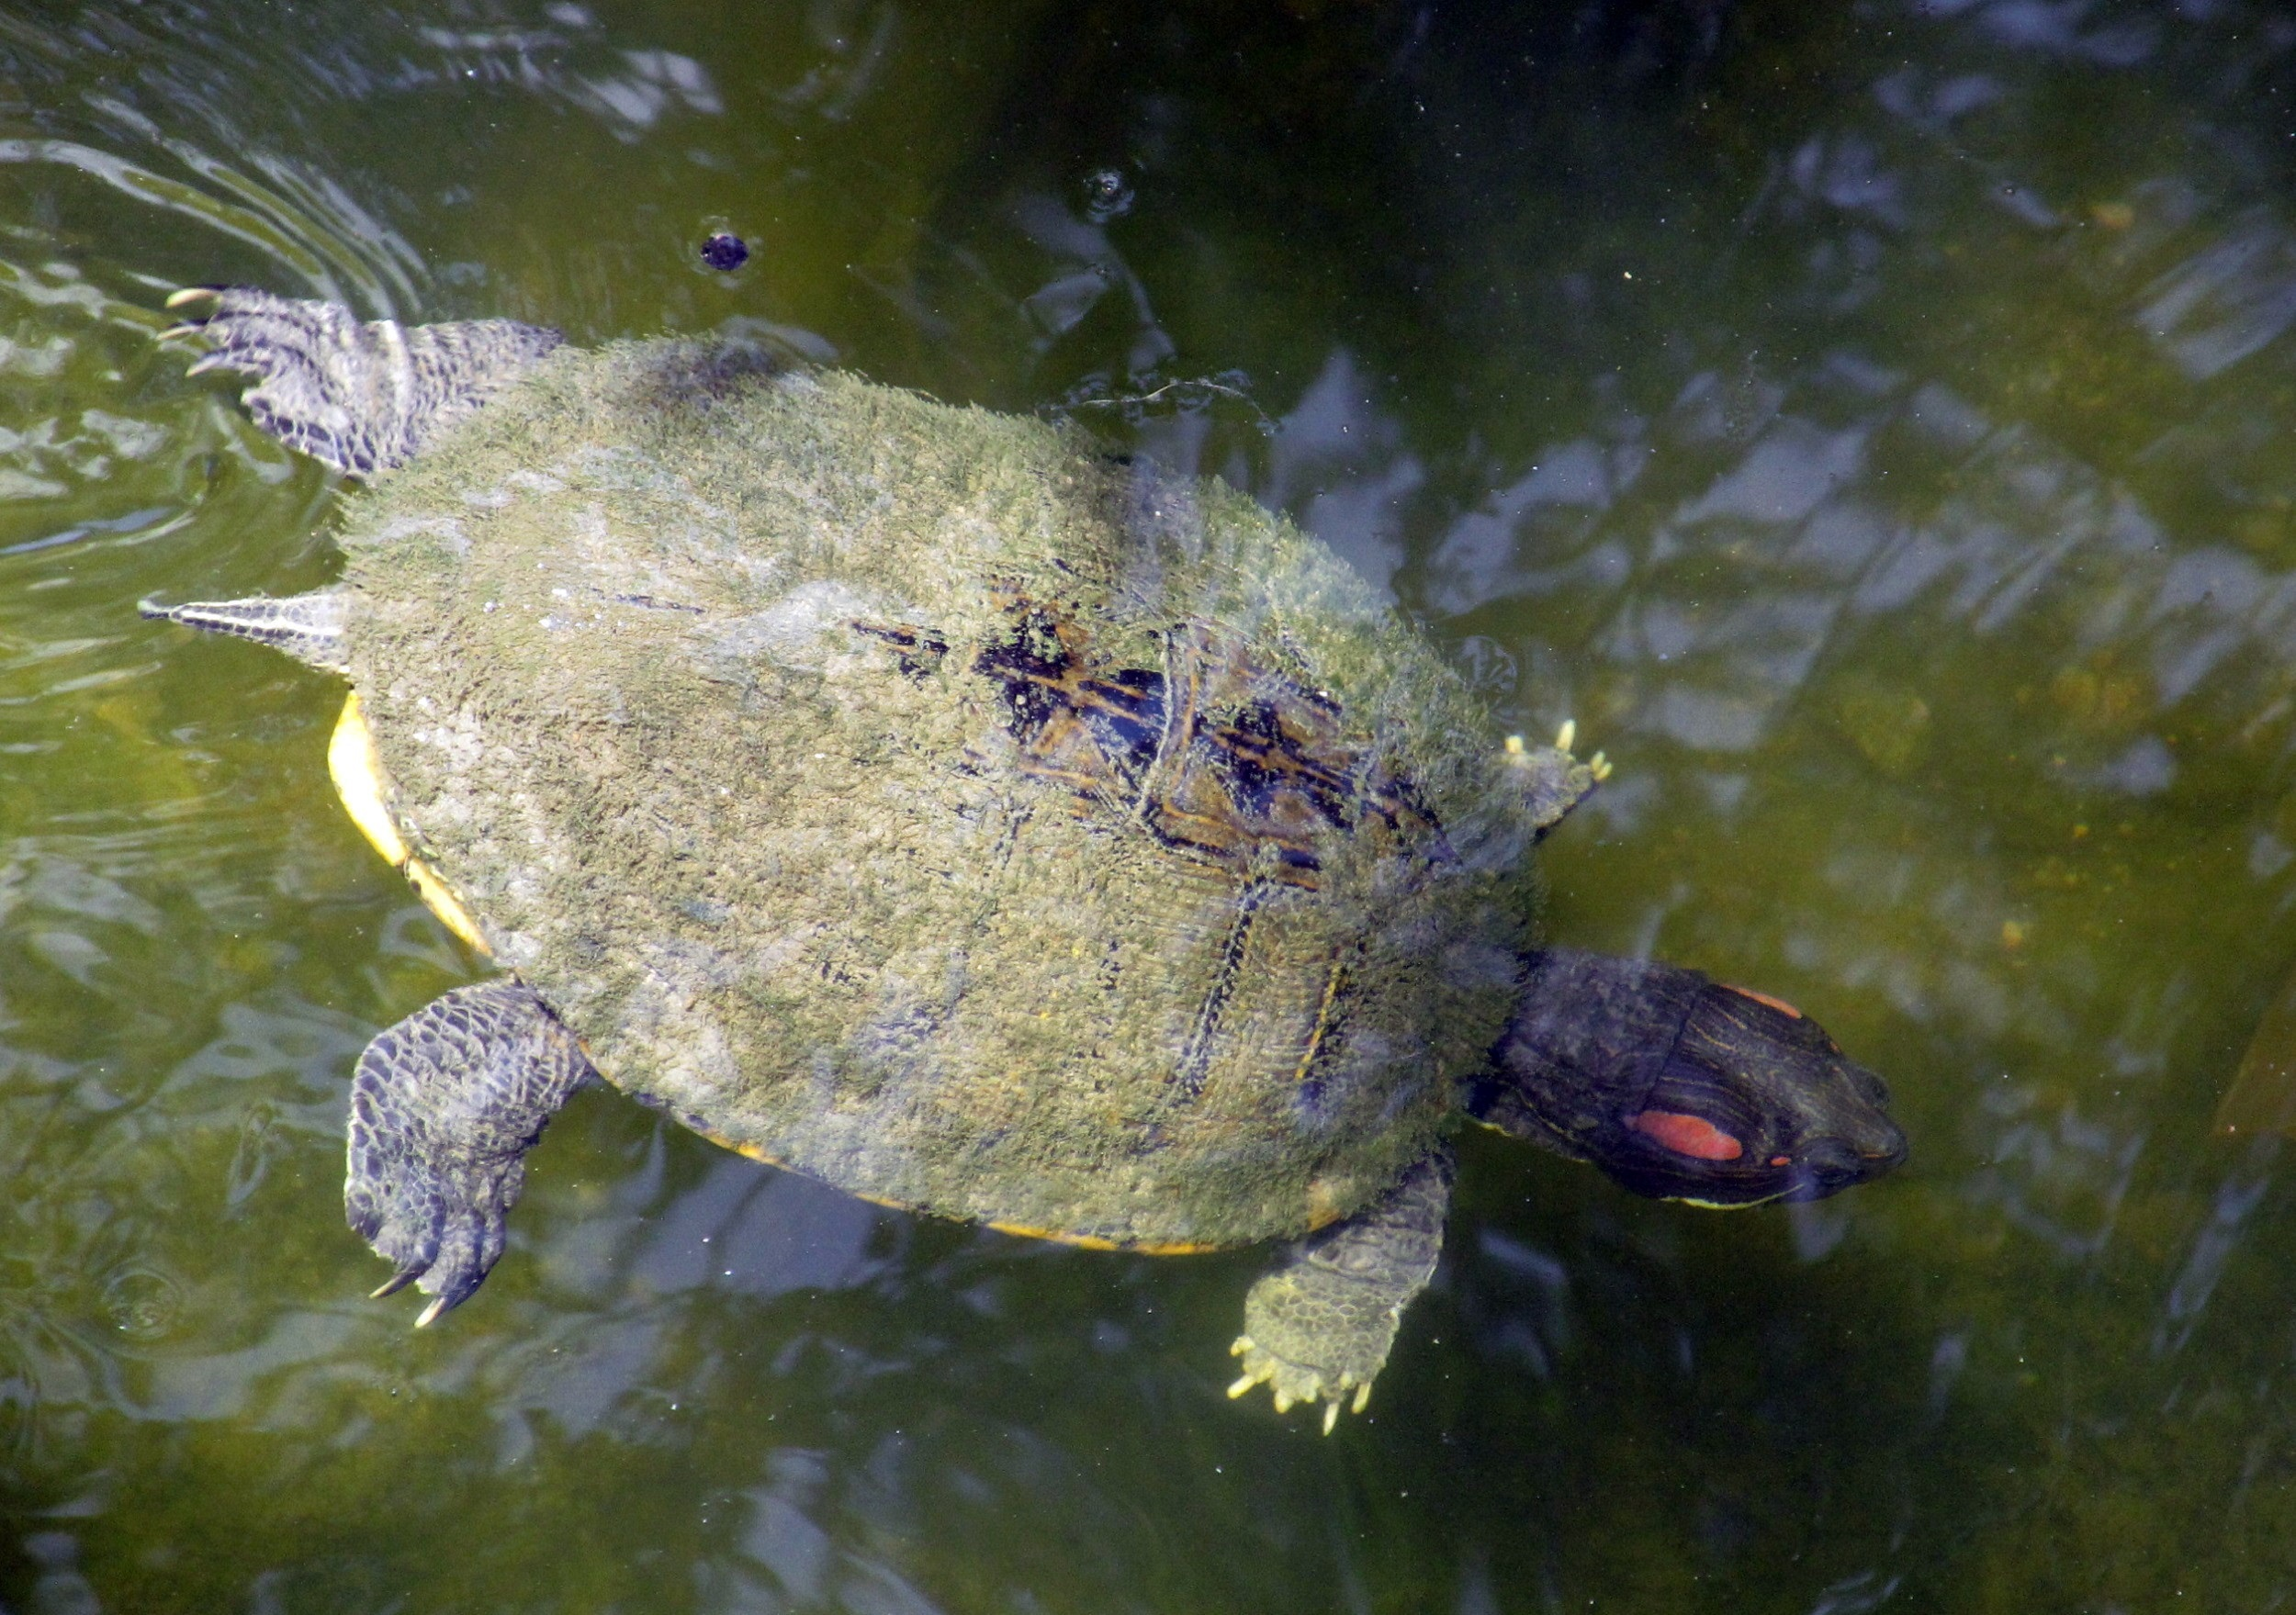 Turtle Swimming, Animal, Flow, Nature, Swimming, HQ Photo